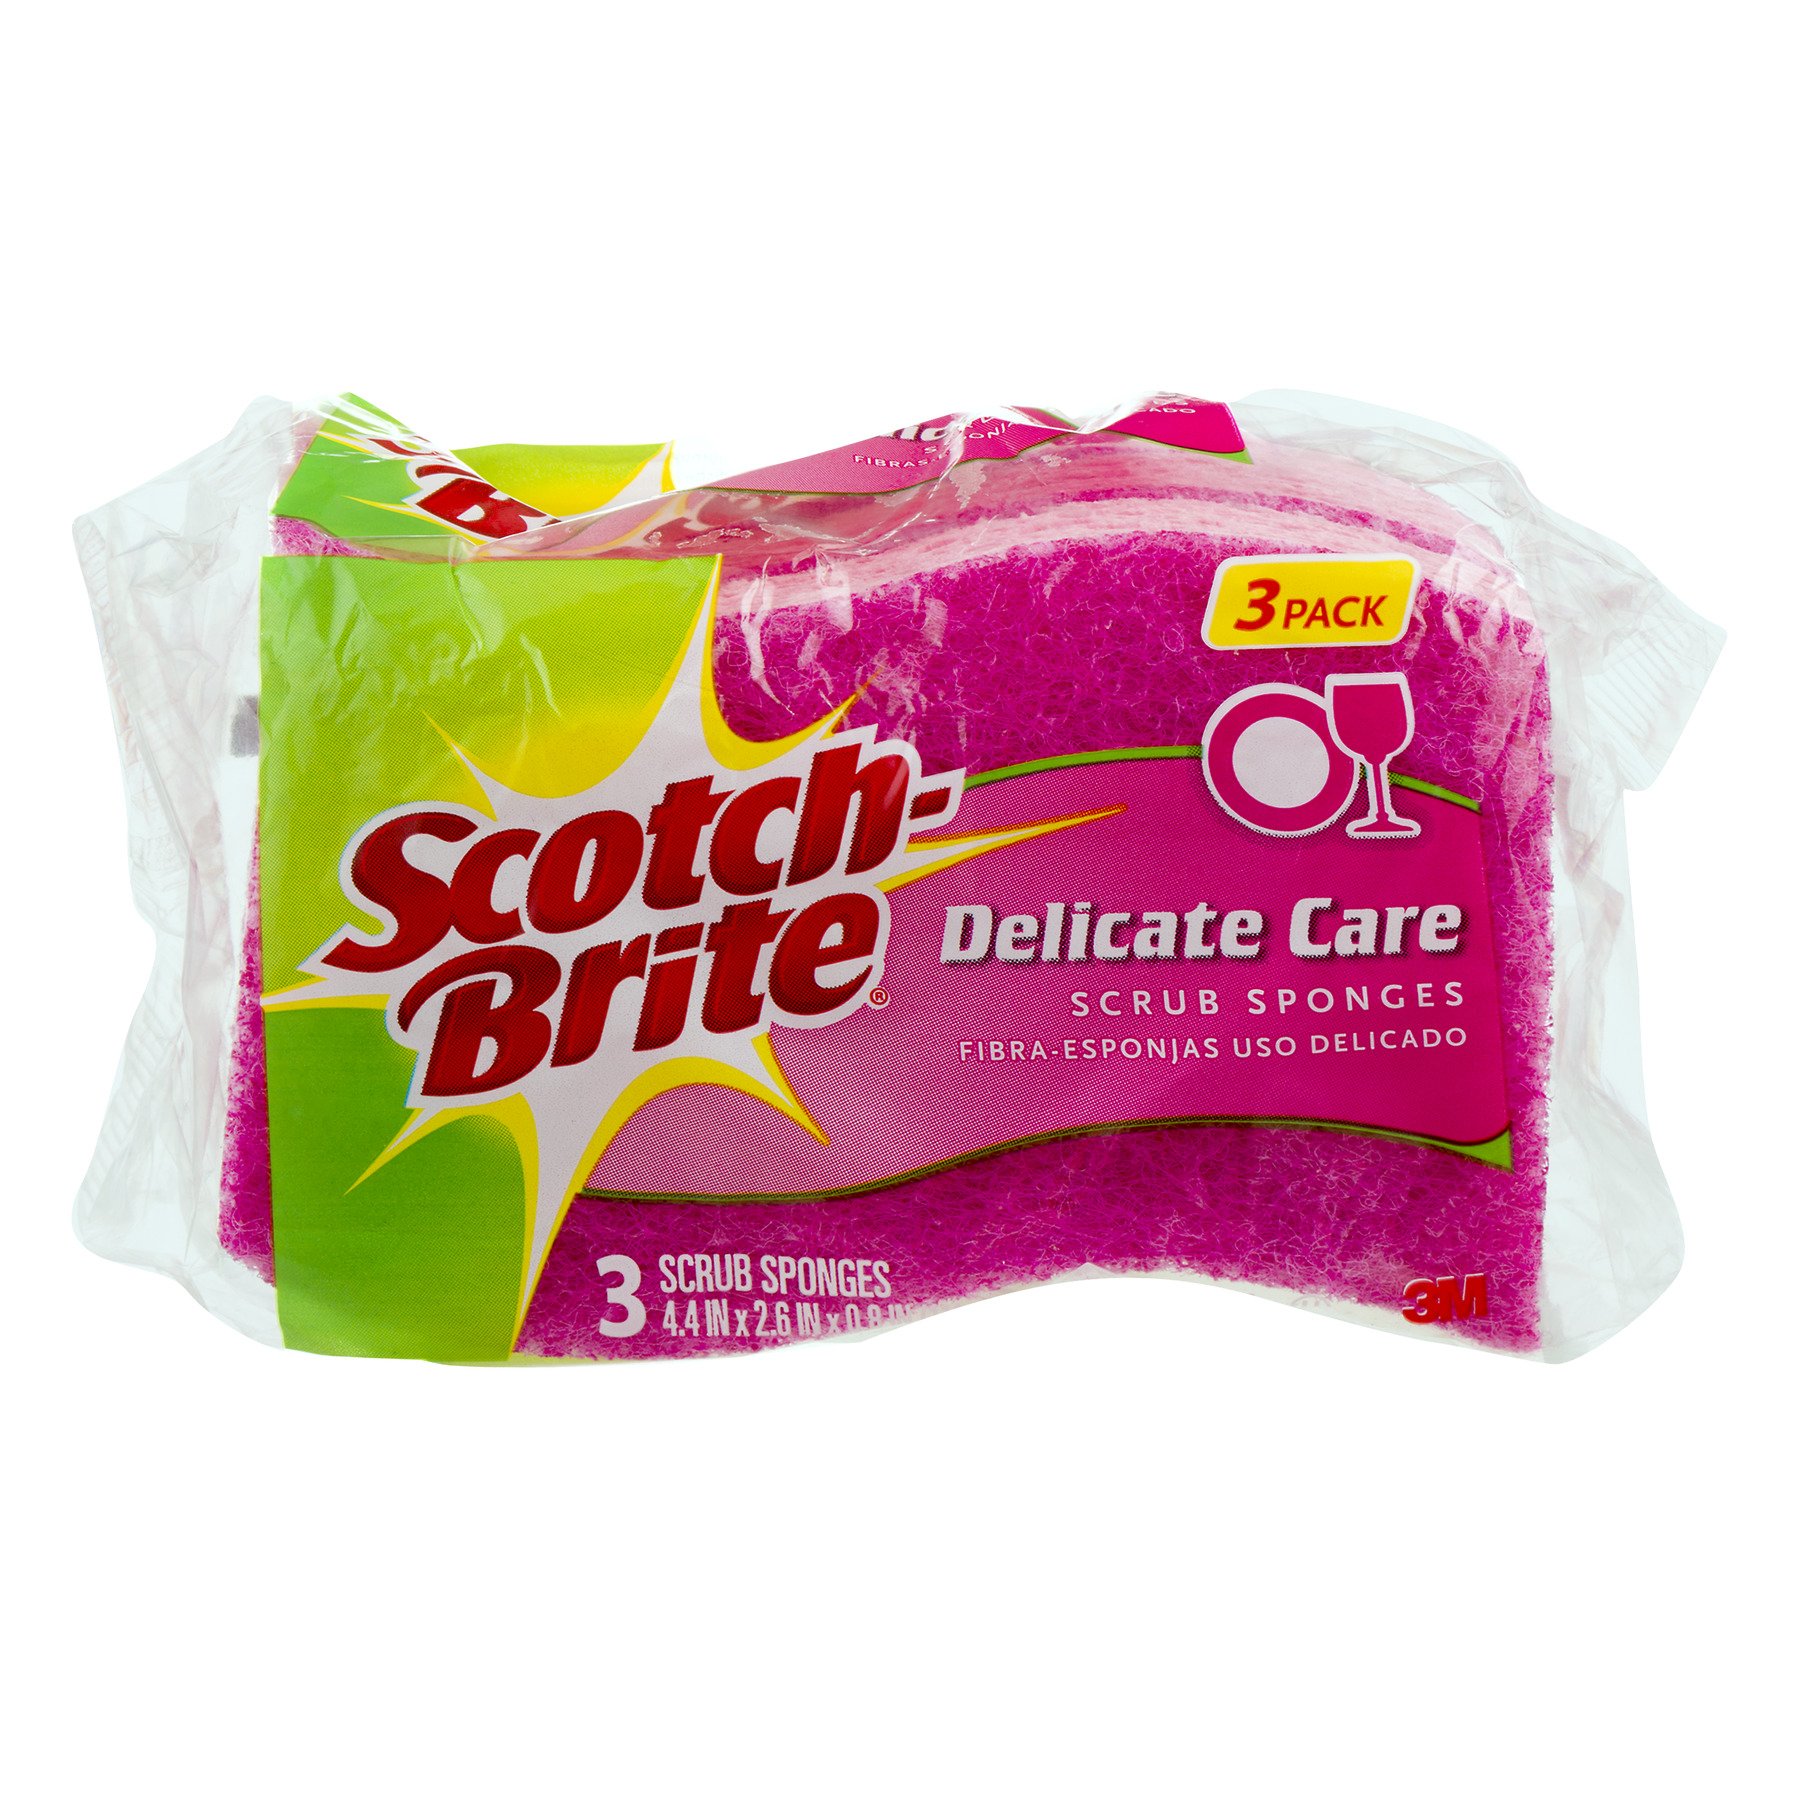 Scotch-Brite Delicate Care Scrub Sponges - 3 CT